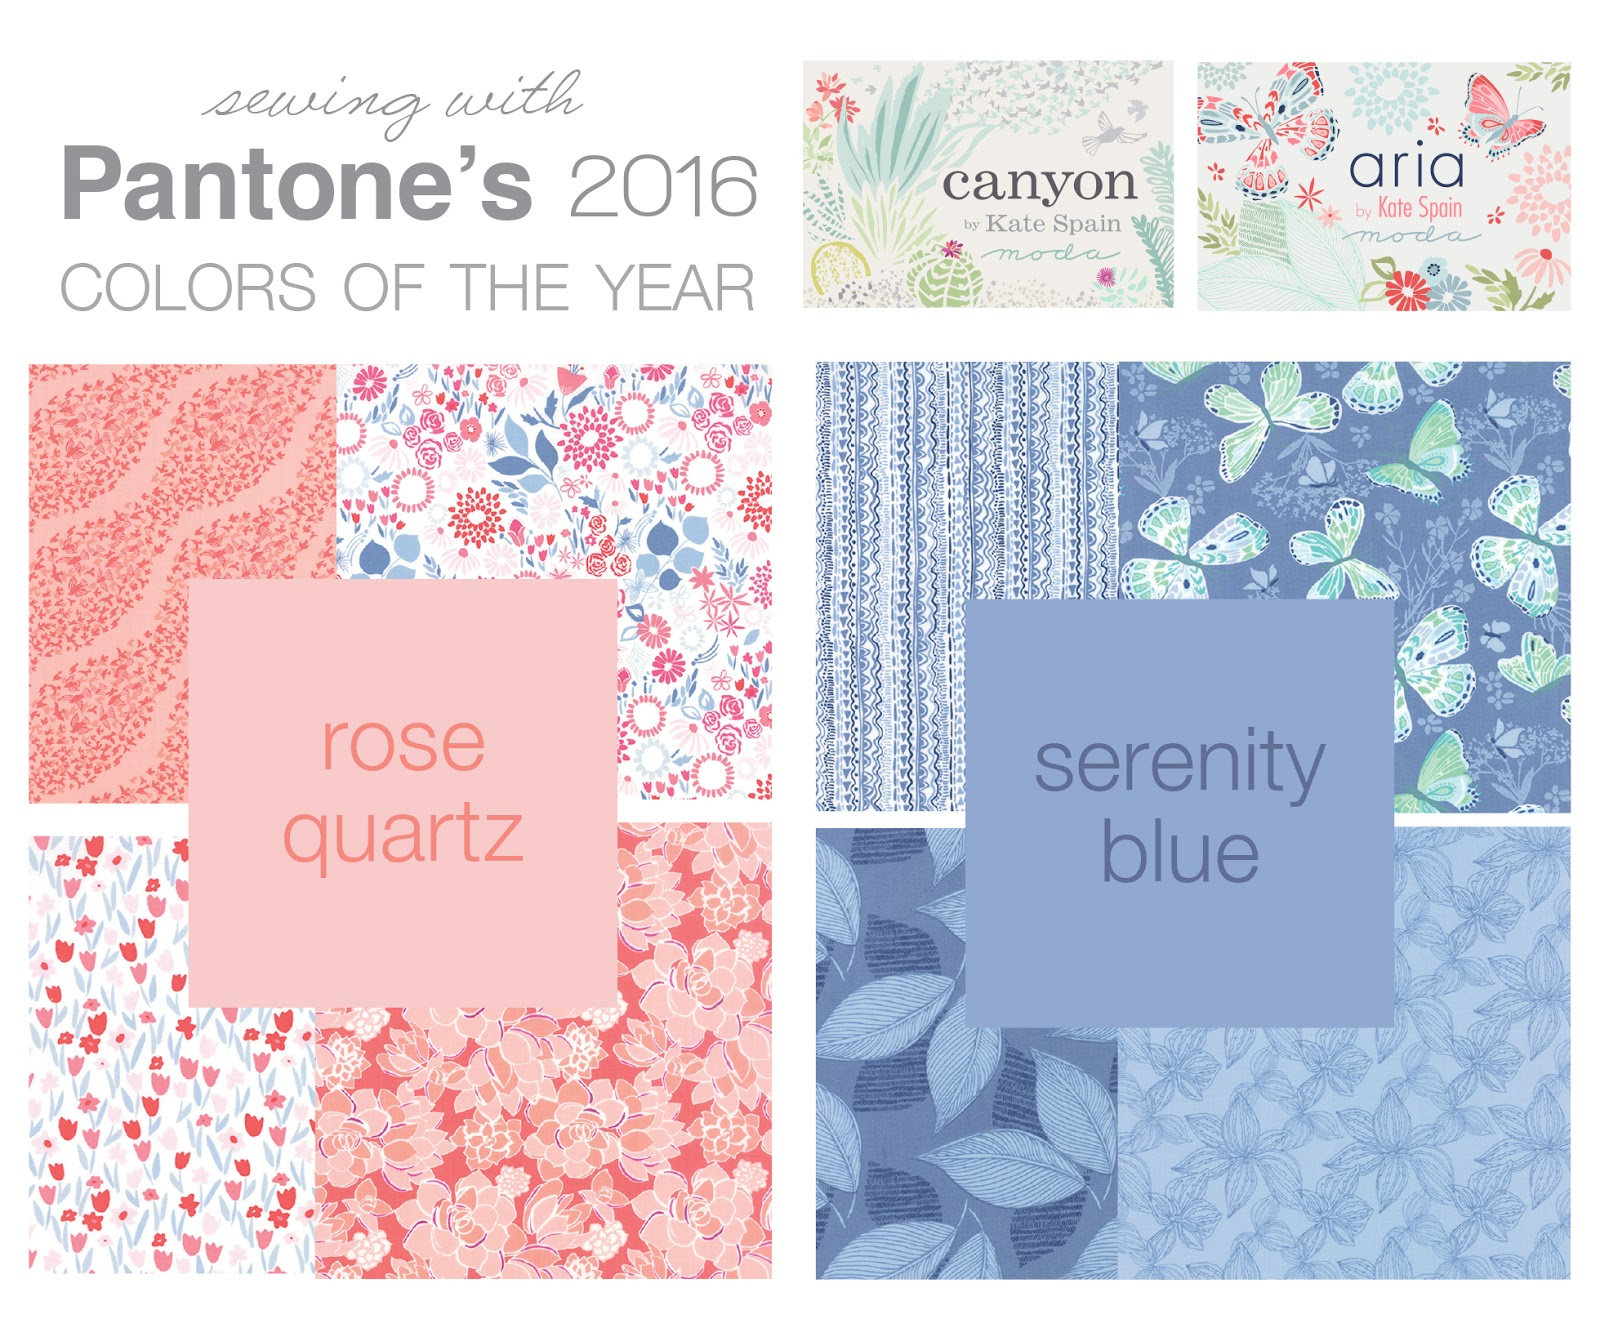 Pantone 2016: The Drawing Board: Pantone's 2016 Colors Of The Year